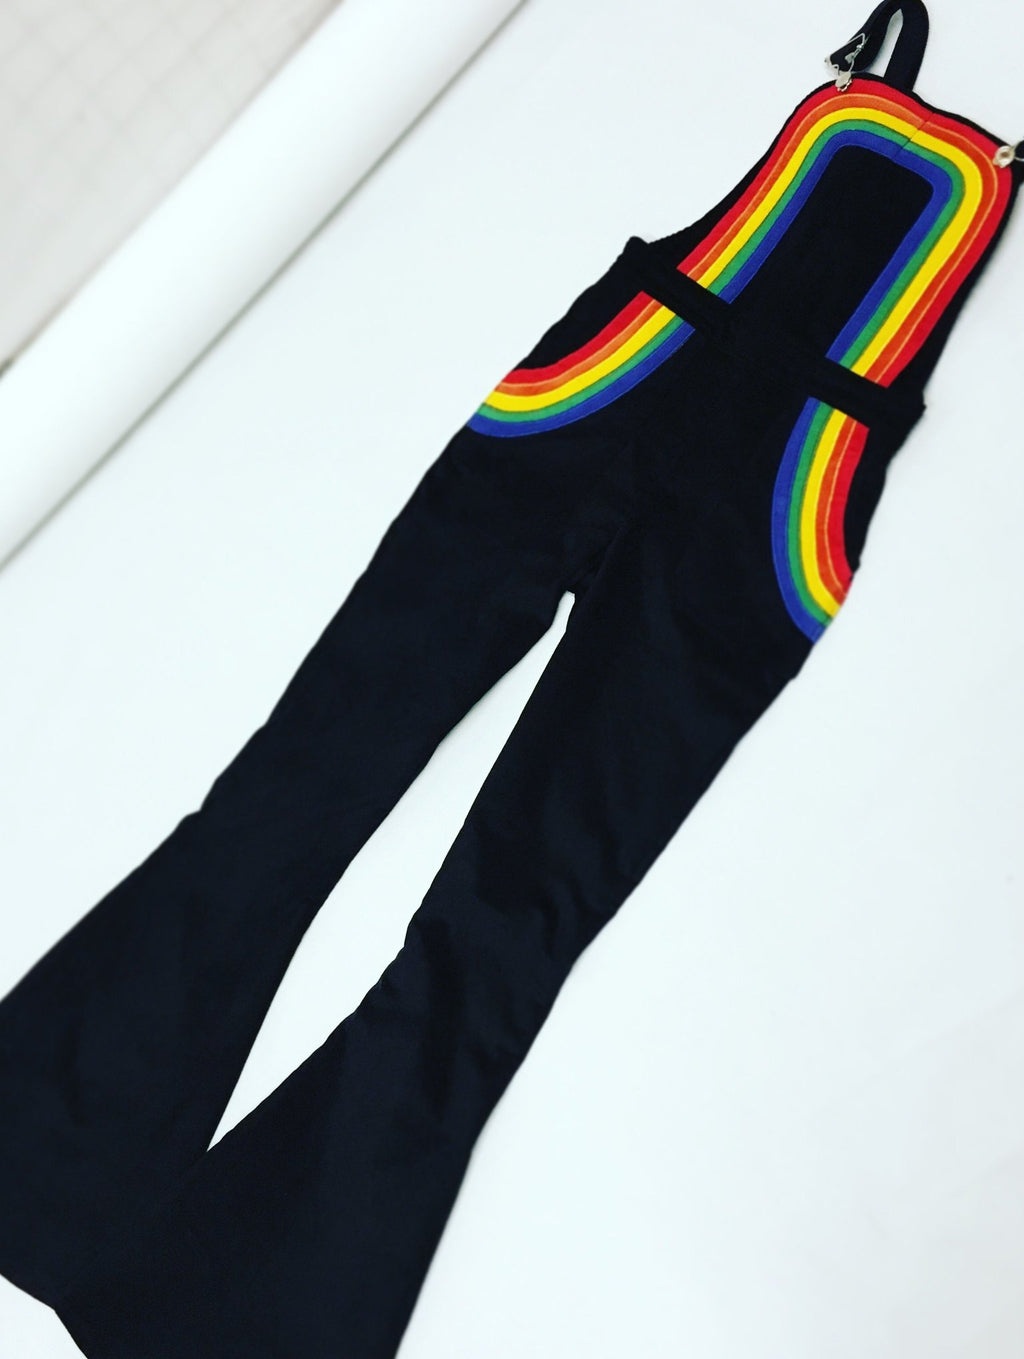 The Rainbow Dungarees Pre-order